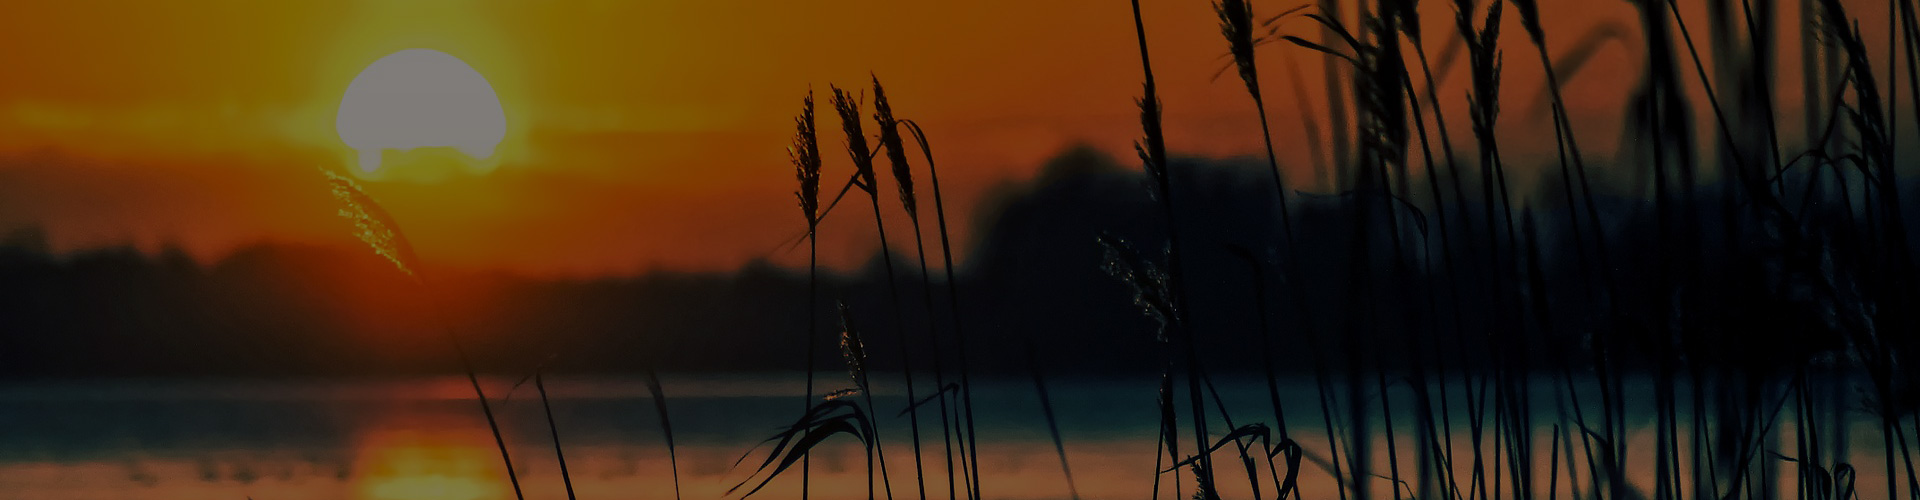 Sun setting behind the reeds